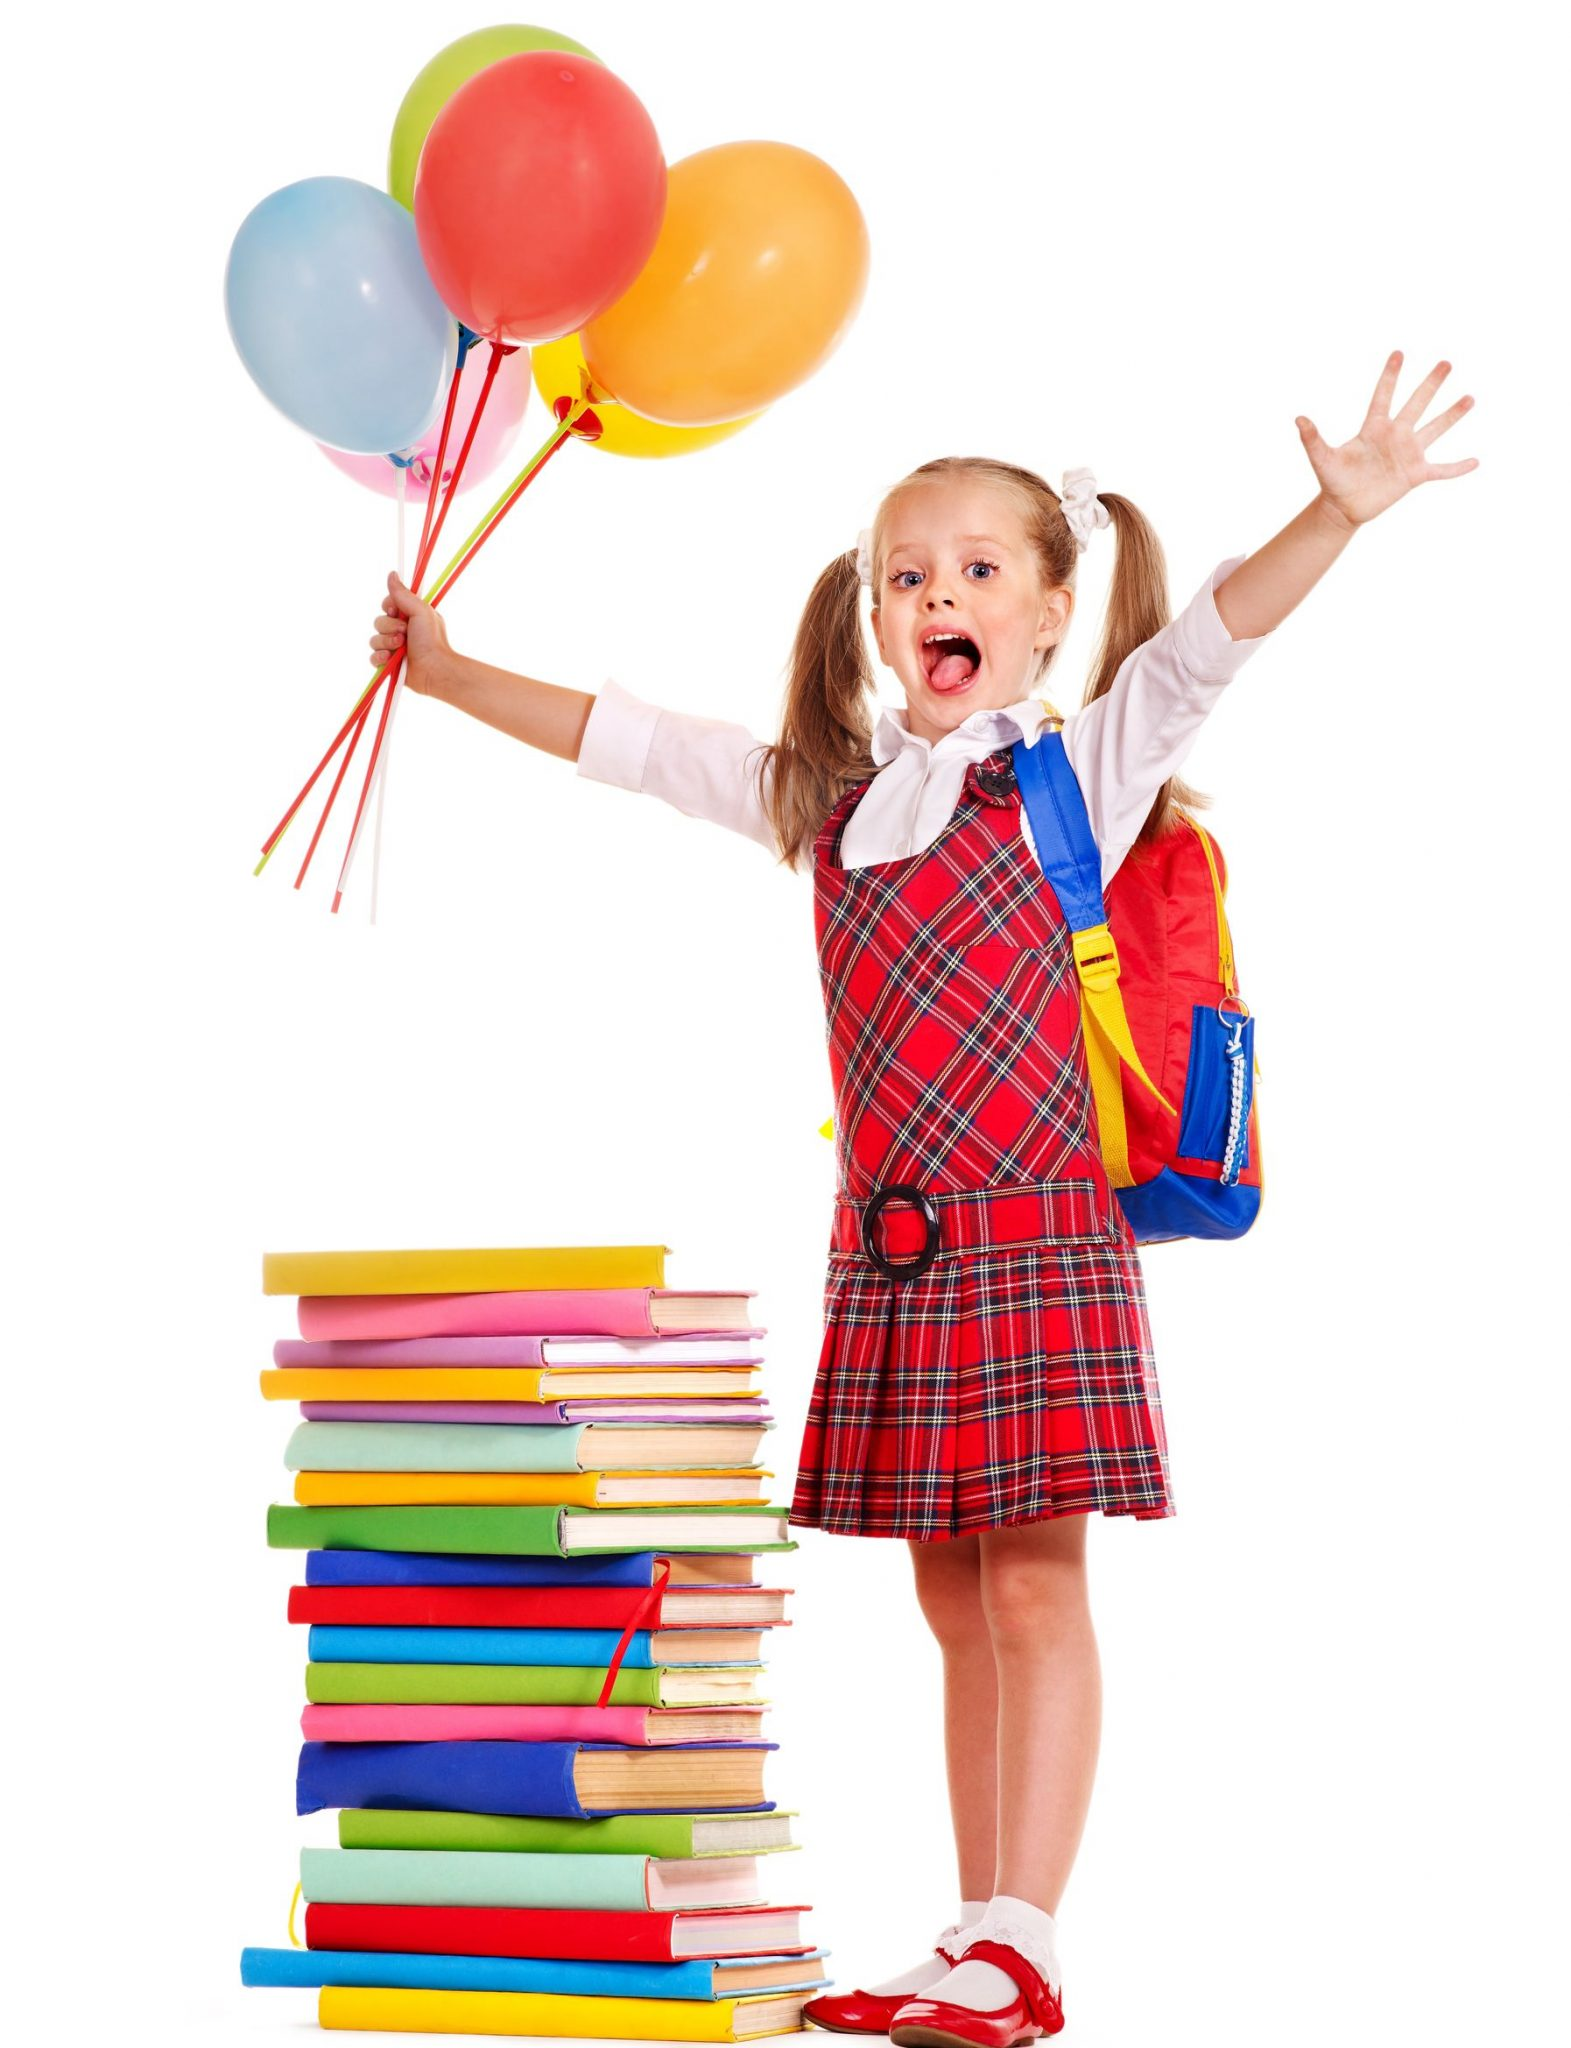 19556945 - child with book holding balloon. isolated on white.